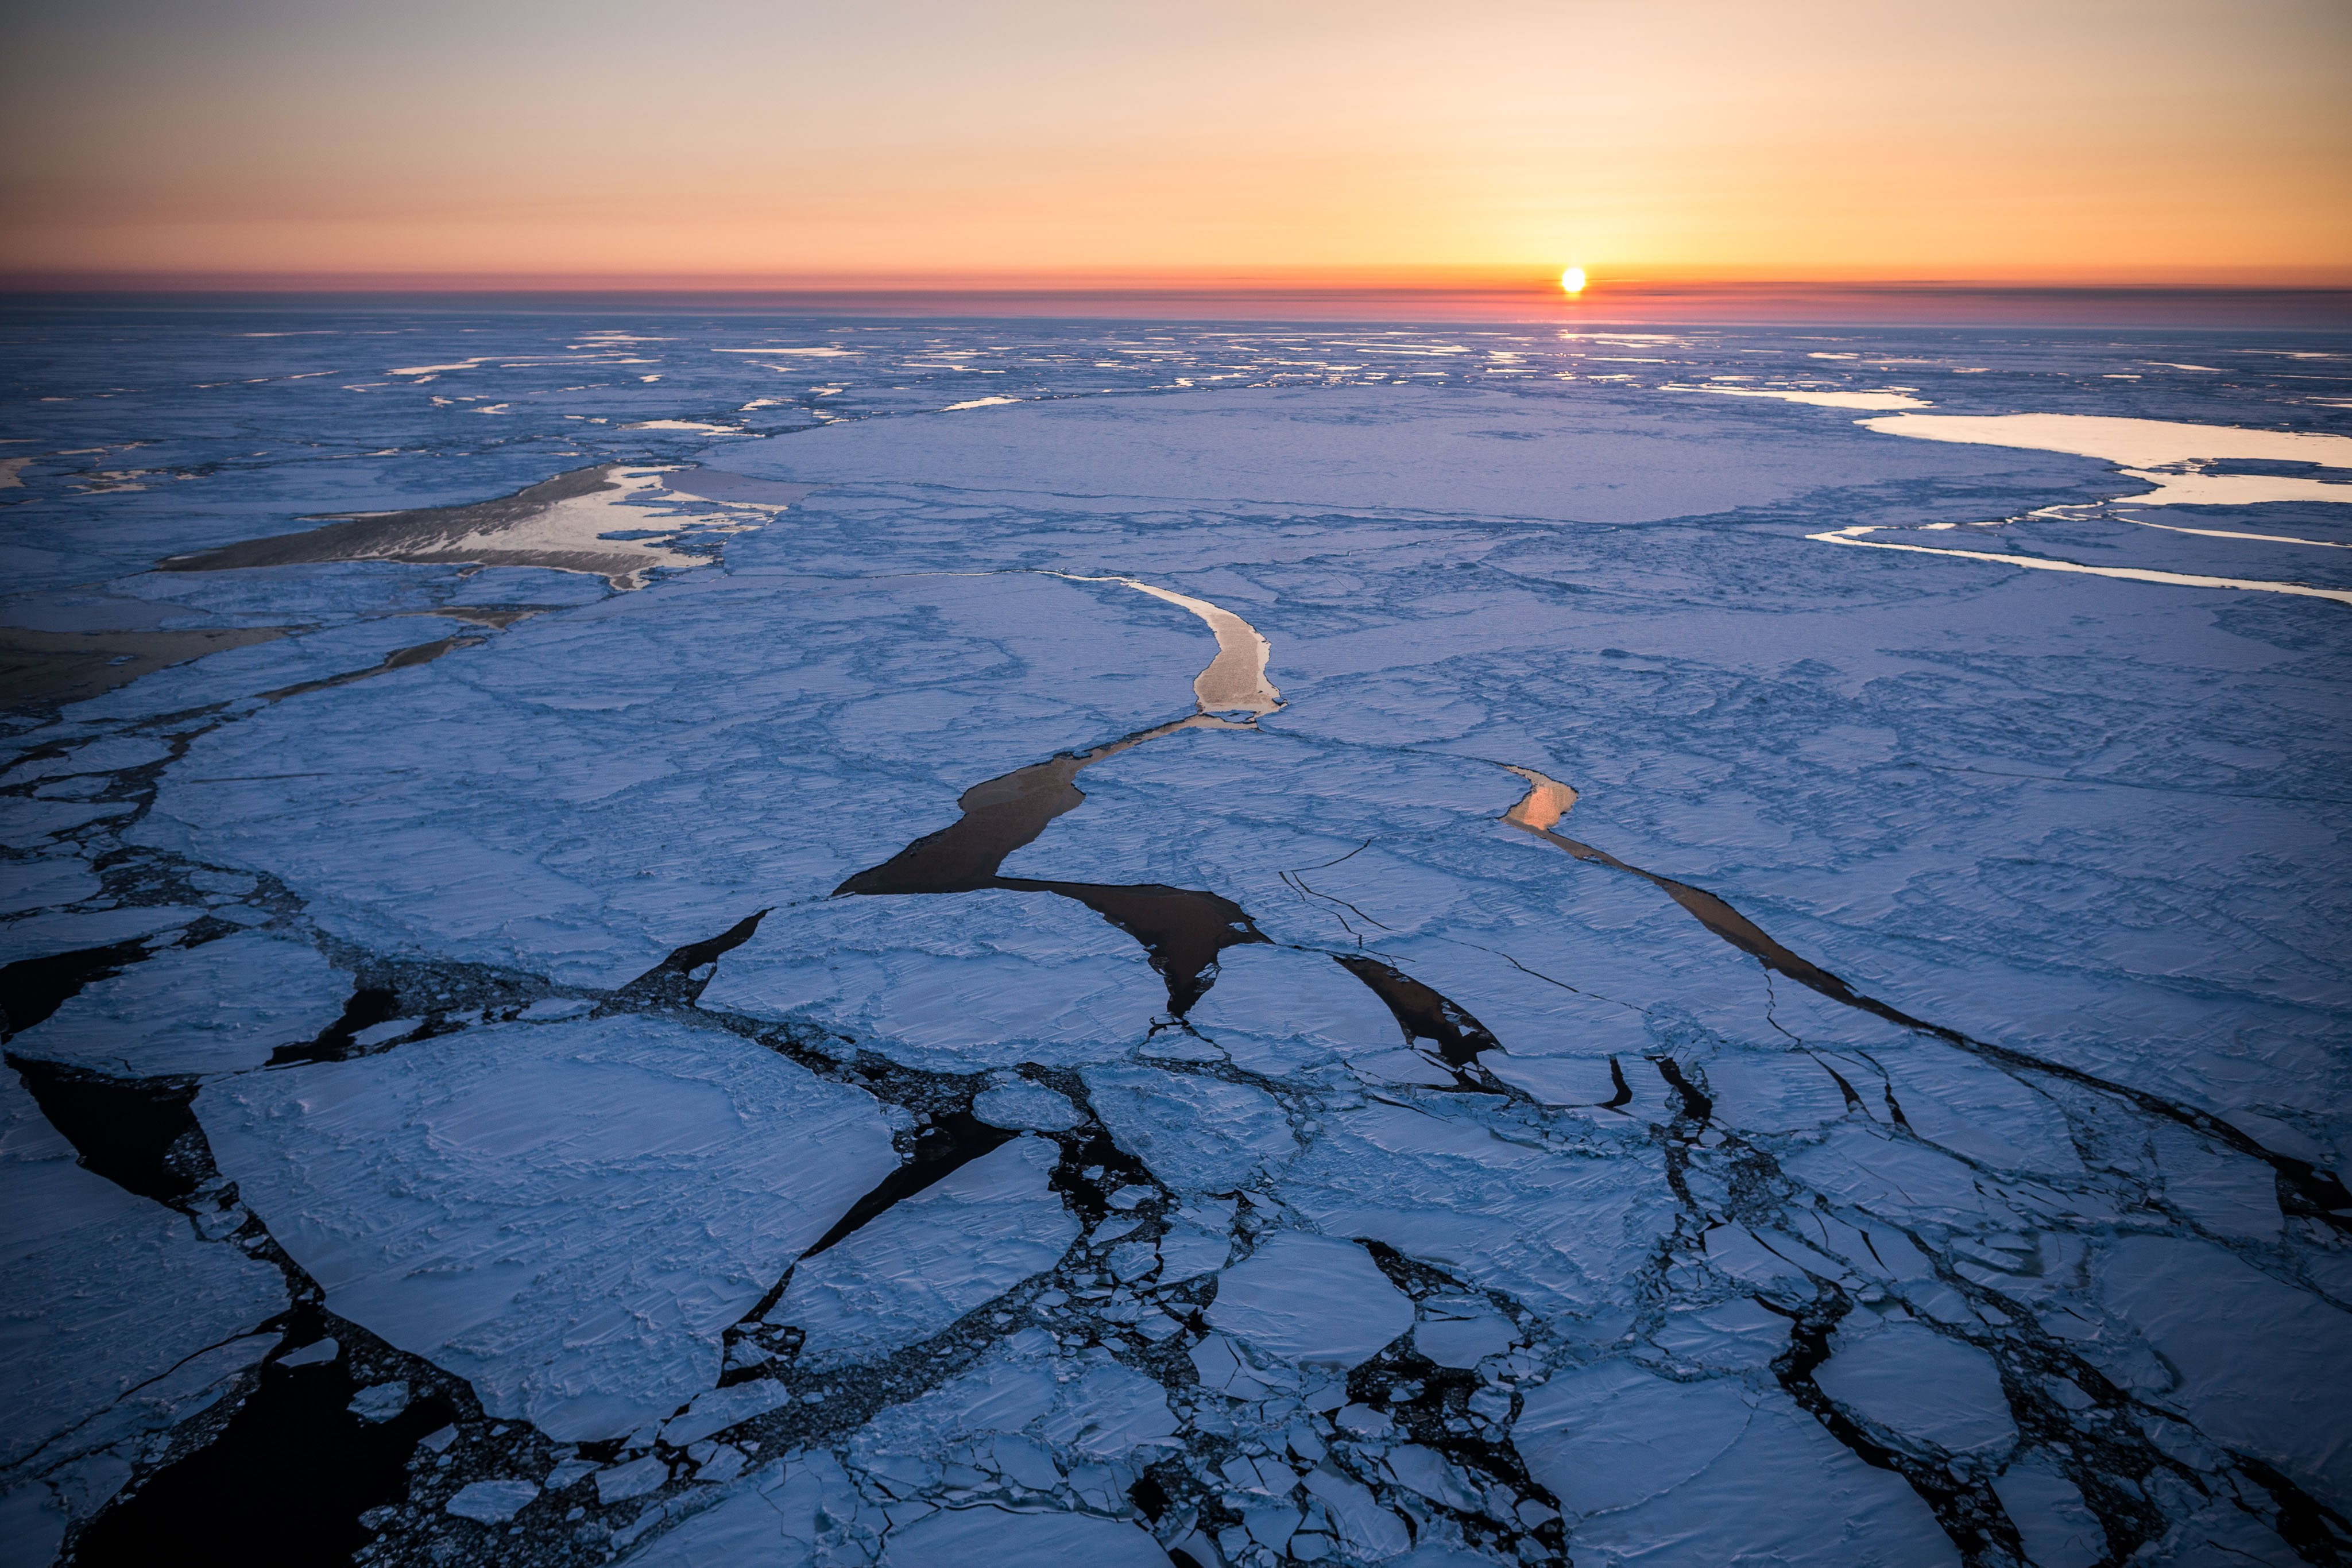 A 2013 file photo shows sea ice in the Bering Sea. (Loren Holmes / Alaska Dispatch News file photo)